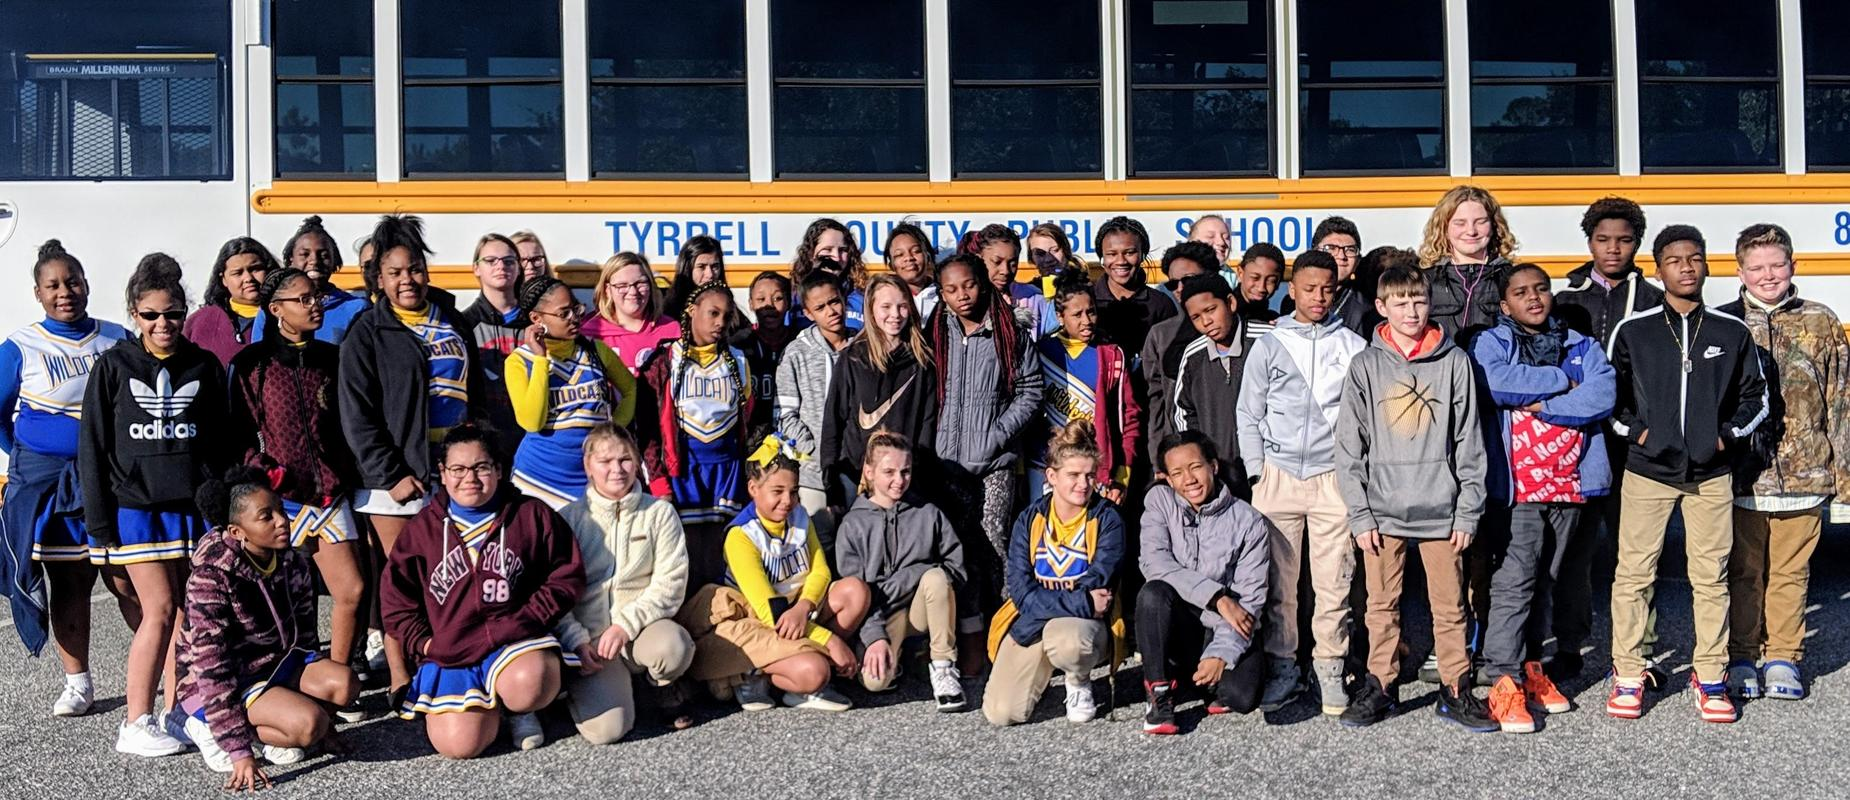 Columbia Middle School students standing in front of a school bus